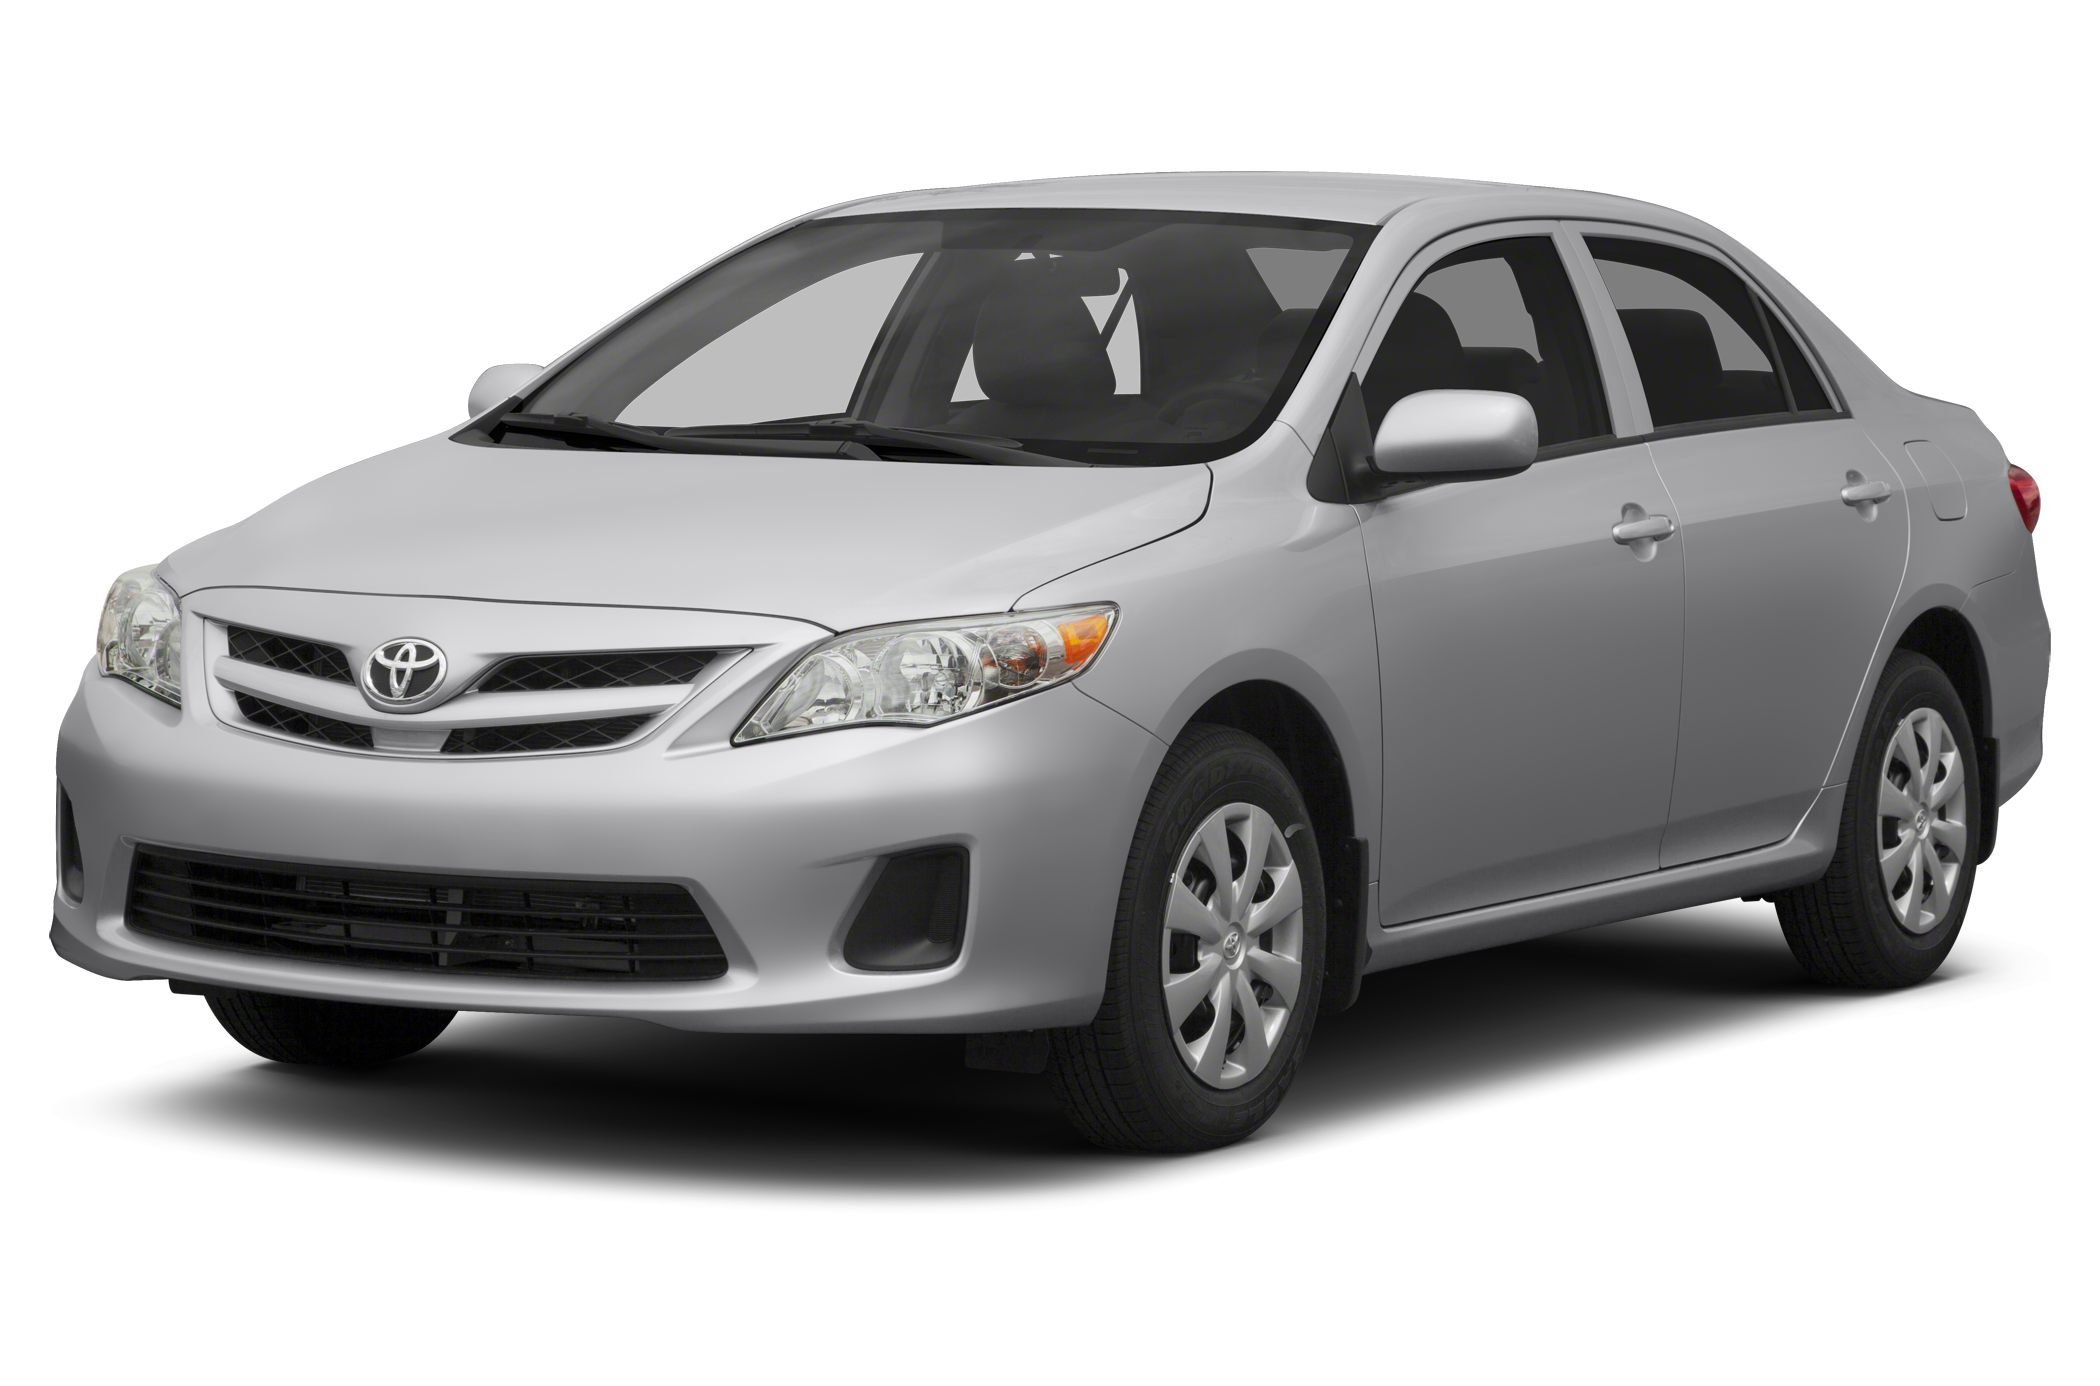 2012 Toyota Corolla LE Sedan for sale in Beaufort for $11,987 with 42,694 miles.